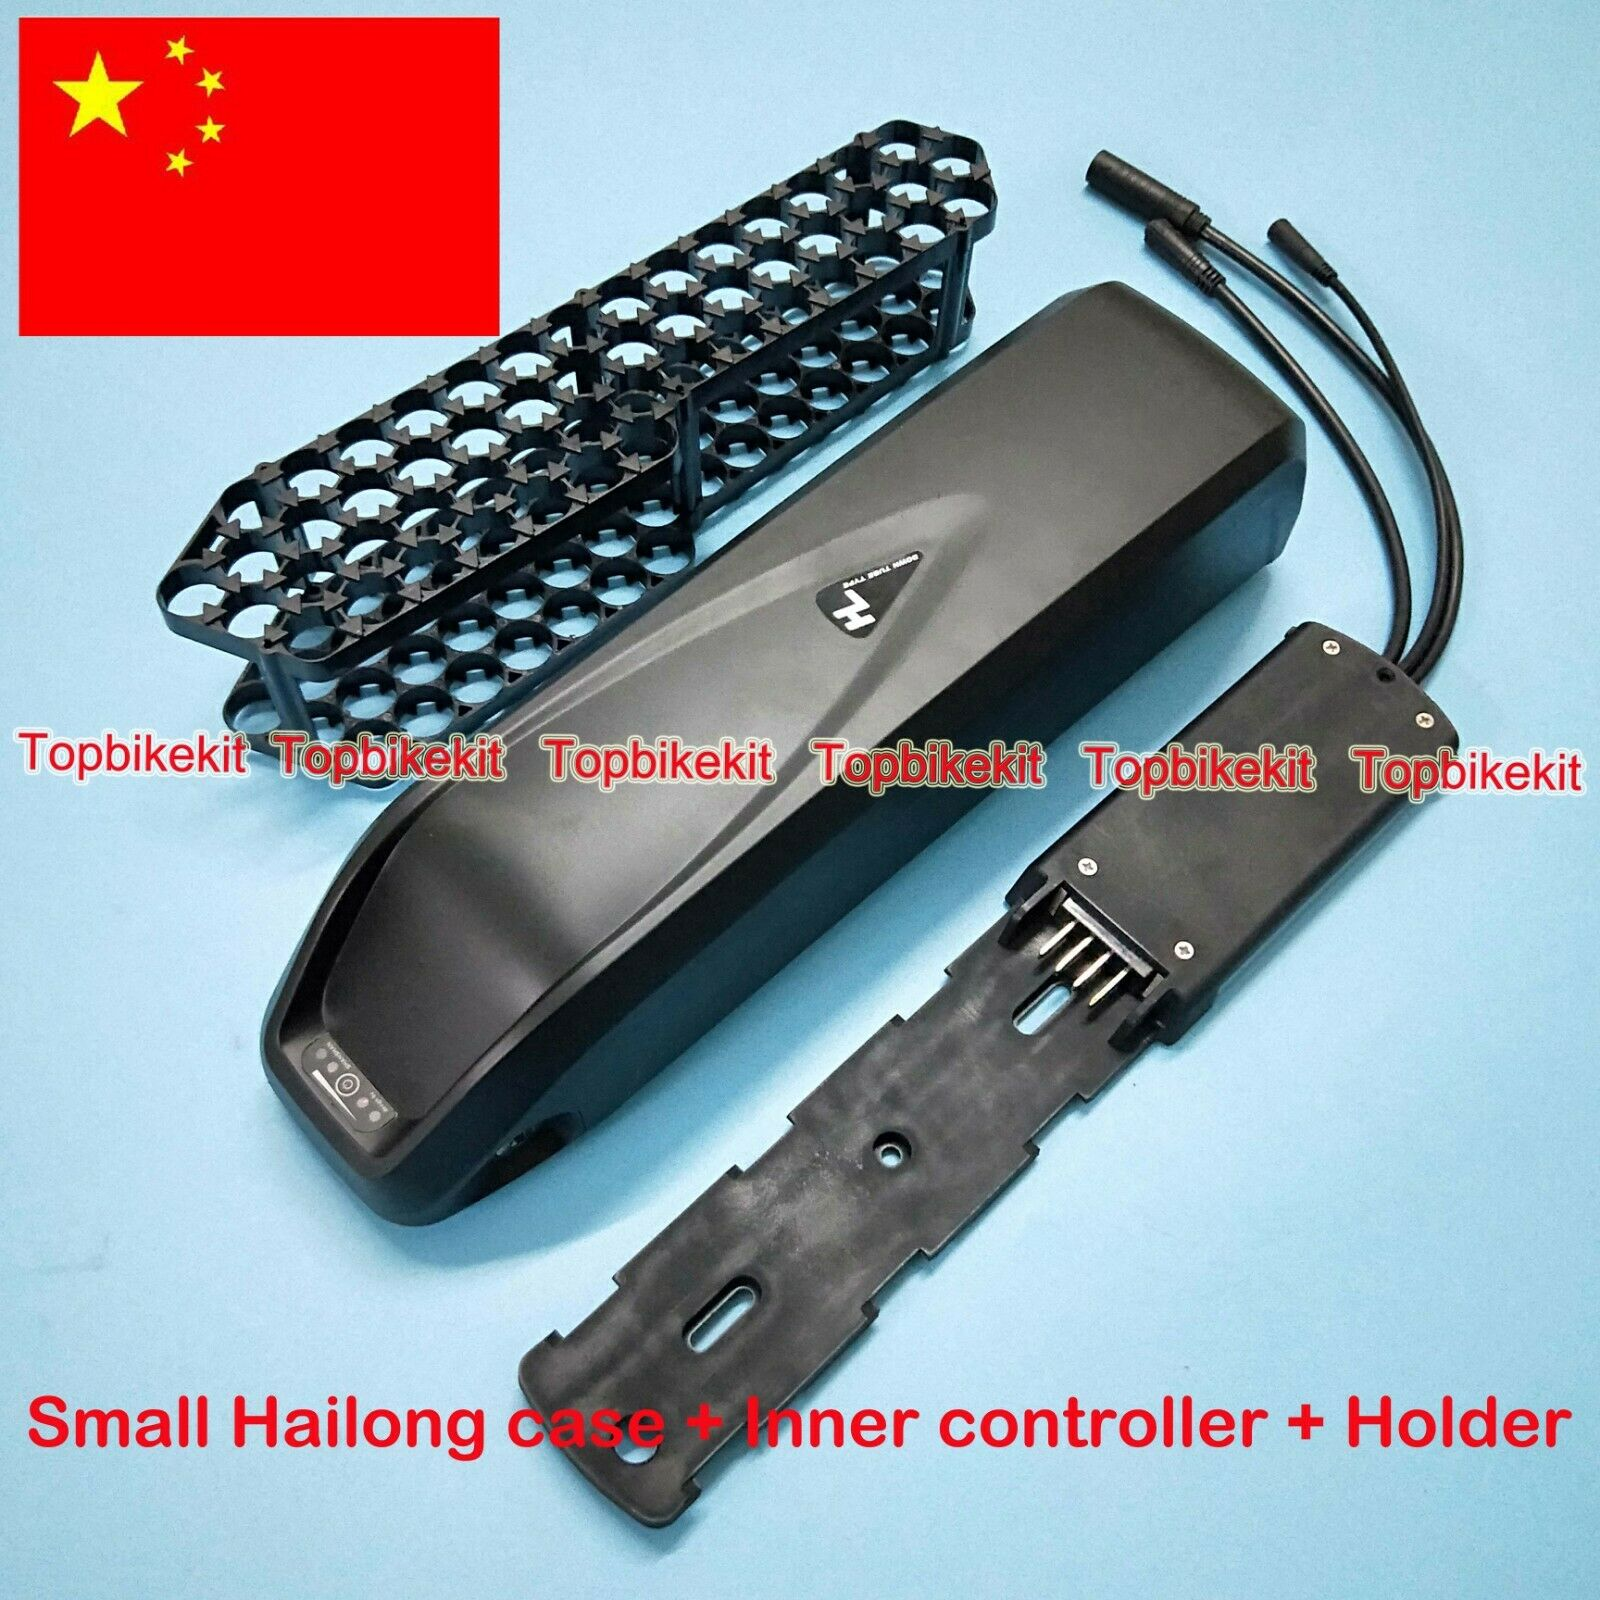 Hailong Battery case 52pcs 18650  Holder 36V 48V Inner Controller Ebike Parts